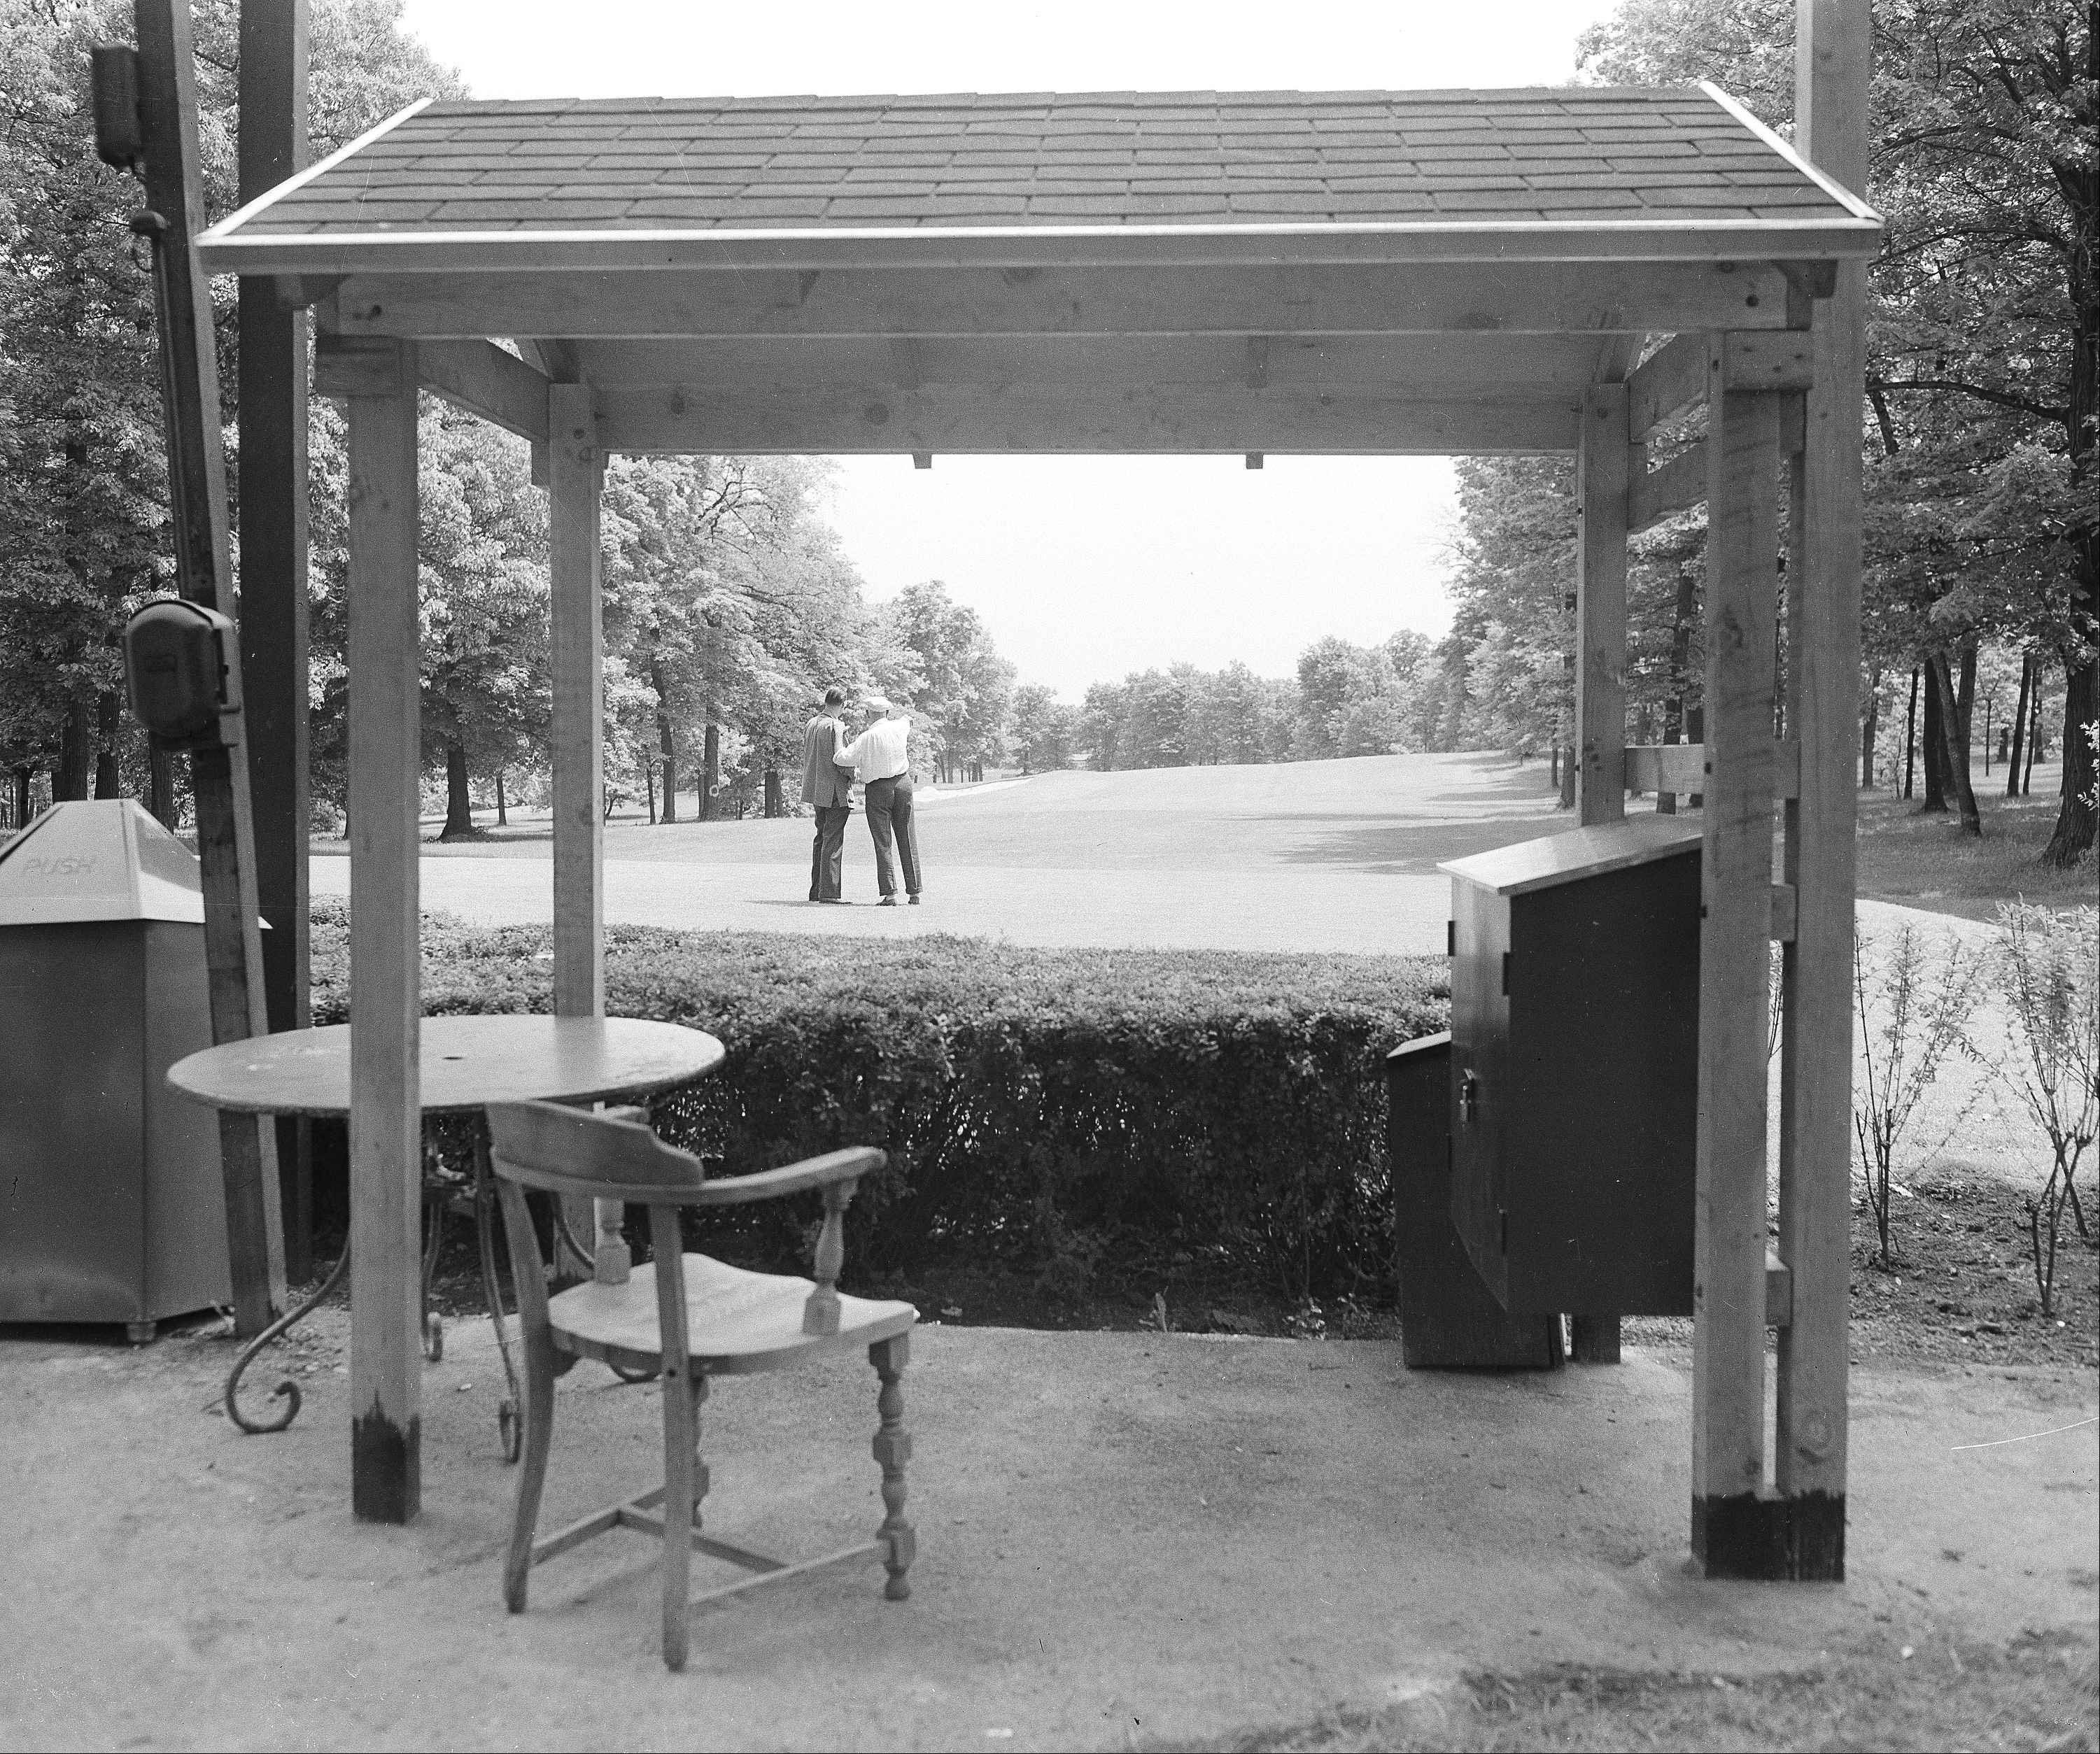 This is the No. 1 tee of the Medinah County Club, Illinois on June 3, 1949, where the National Open Golf Championship Match will be held on June 9, 10 and 11. There are few, if any, easy holes over the course. The green is beyond the sand-trap in the distance.